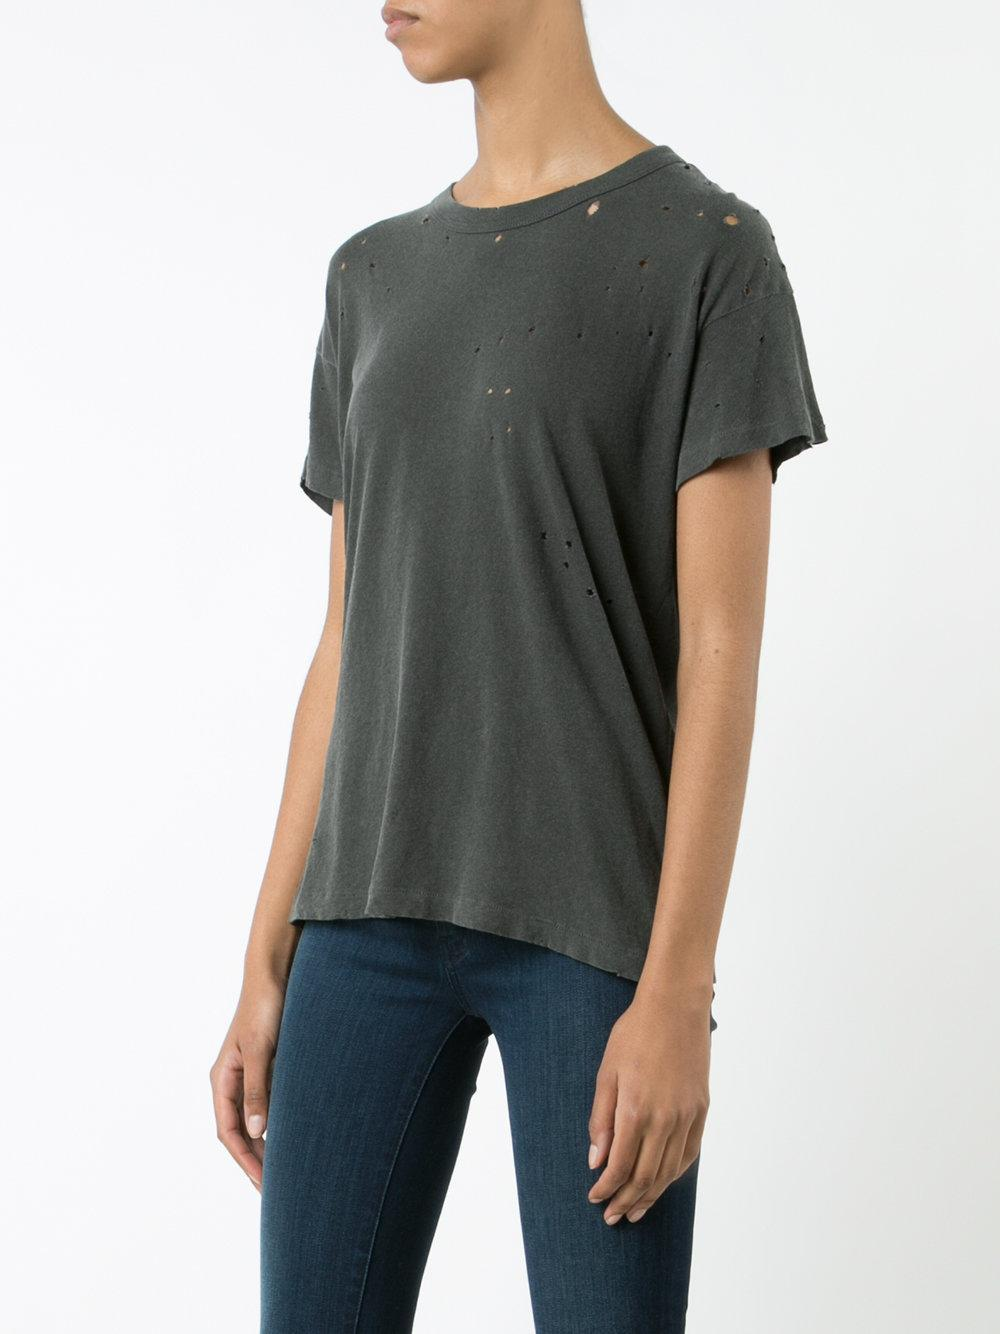 The great perforated detail t shirt women cotton 1 The great t shirt